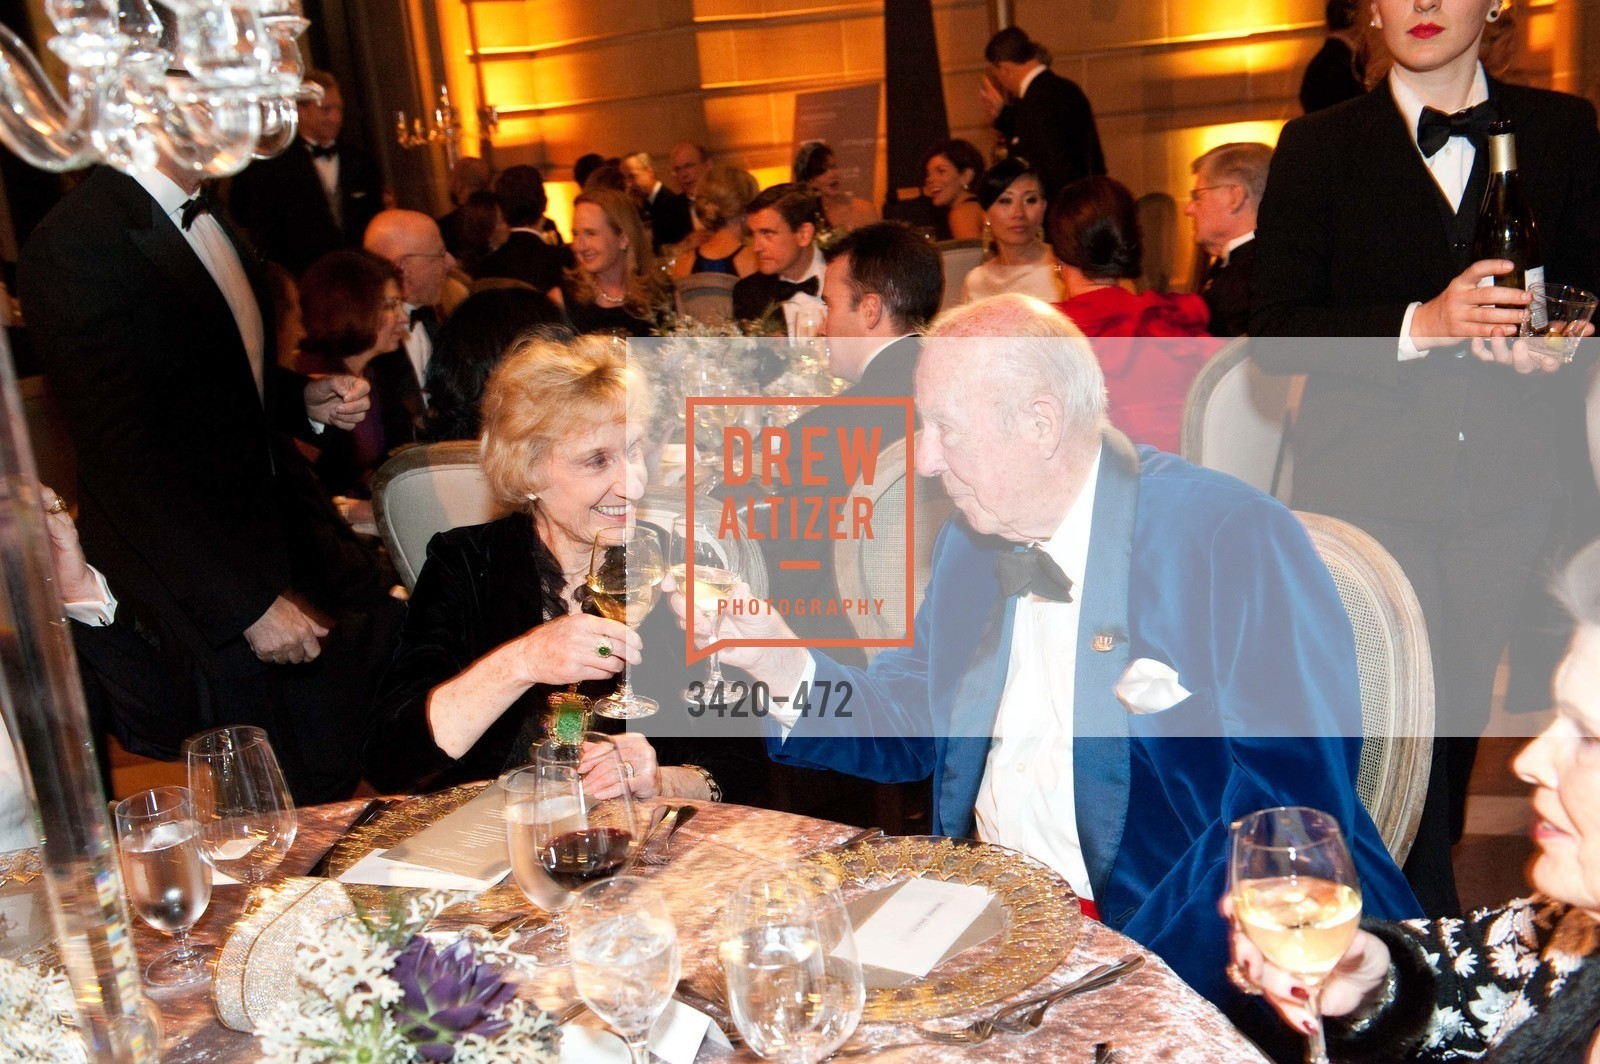 Nancy Bechtle, George Shultz, SAN FRANCISCO BALLET Opening Night Gala: PHENOMENAL - Intermission & Dinner, US. SF City Hall, January 22nd, 2014,Drew Altizer, Drew Altizer Photography, full-service agency, private events, San Francisco photographer, photographer california